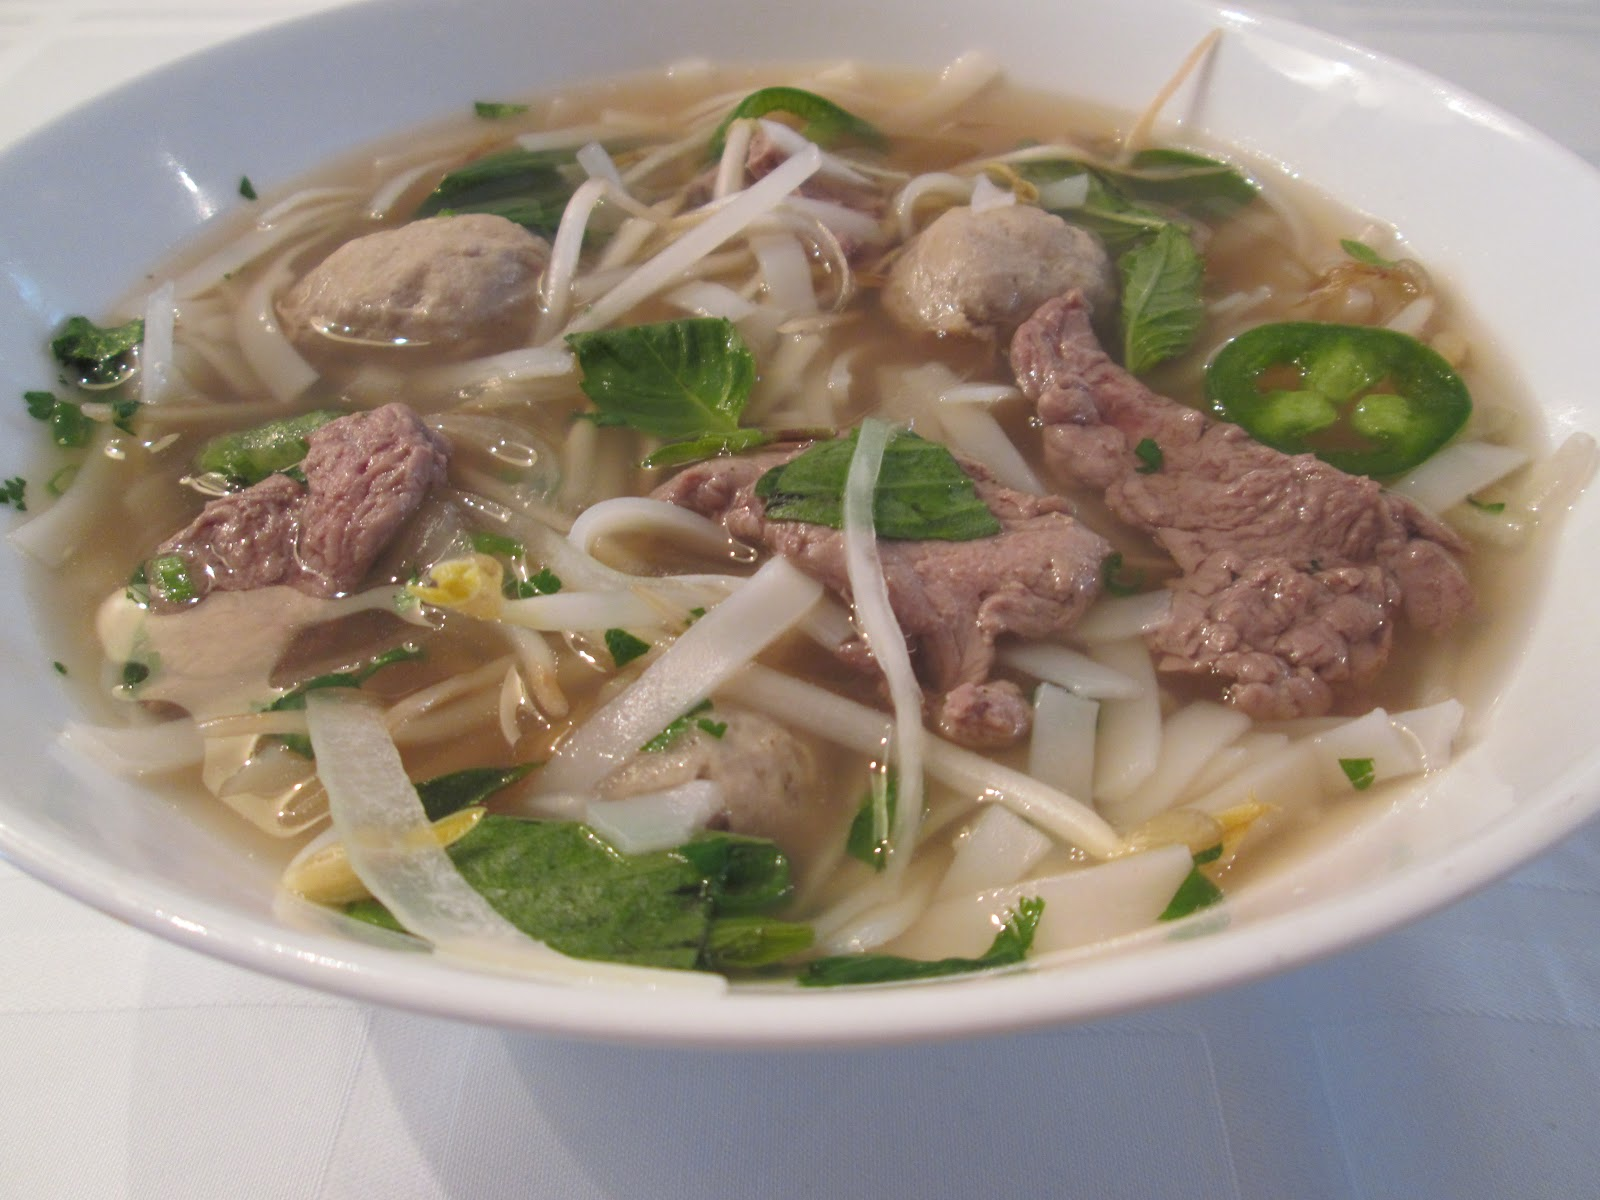 Food for Thought . . .: Pho Bo (Beef Noodle Soup)